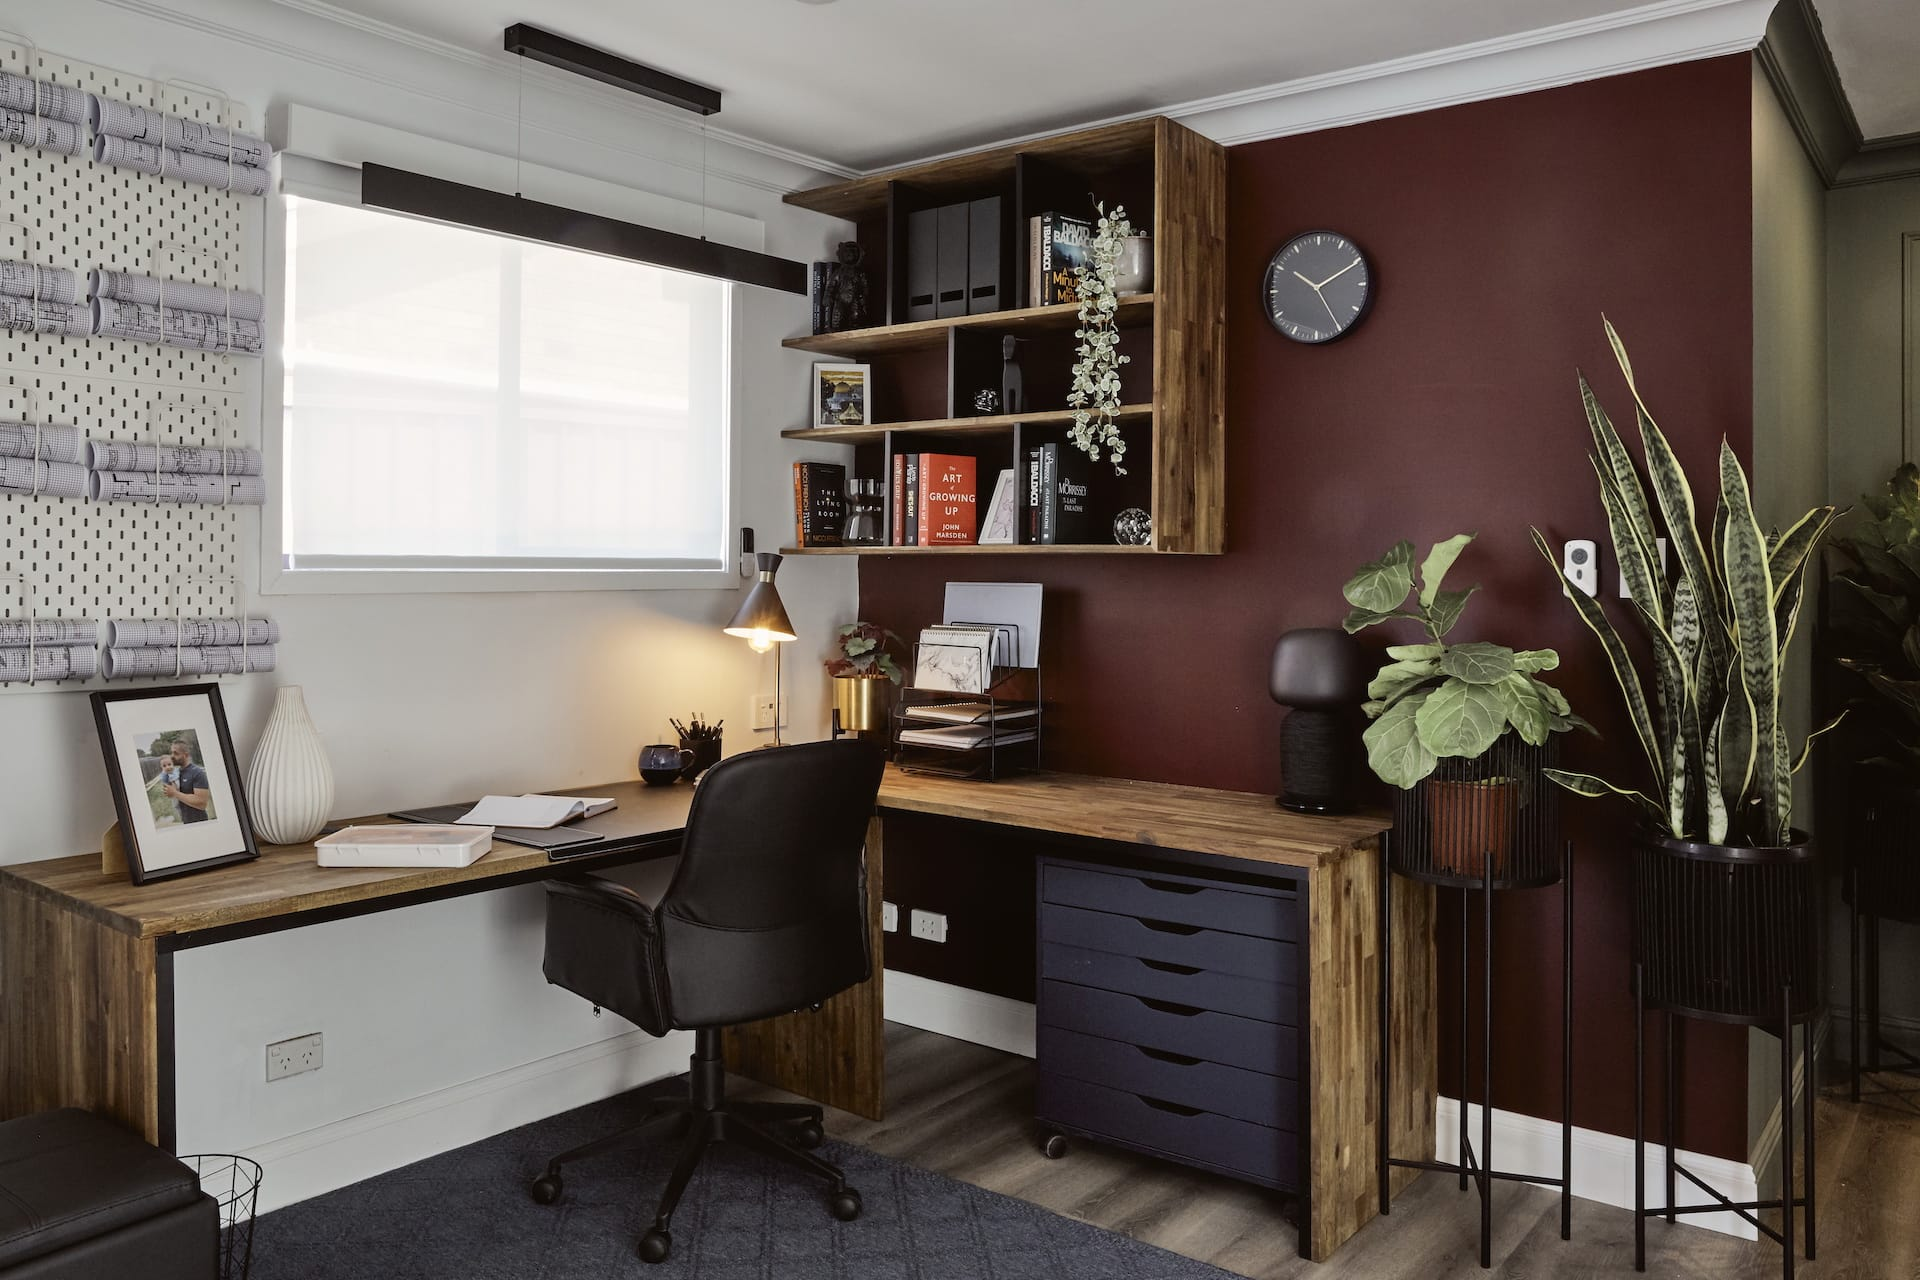 house rules 2020 laith and george home office with burgundy wall and timber shelving